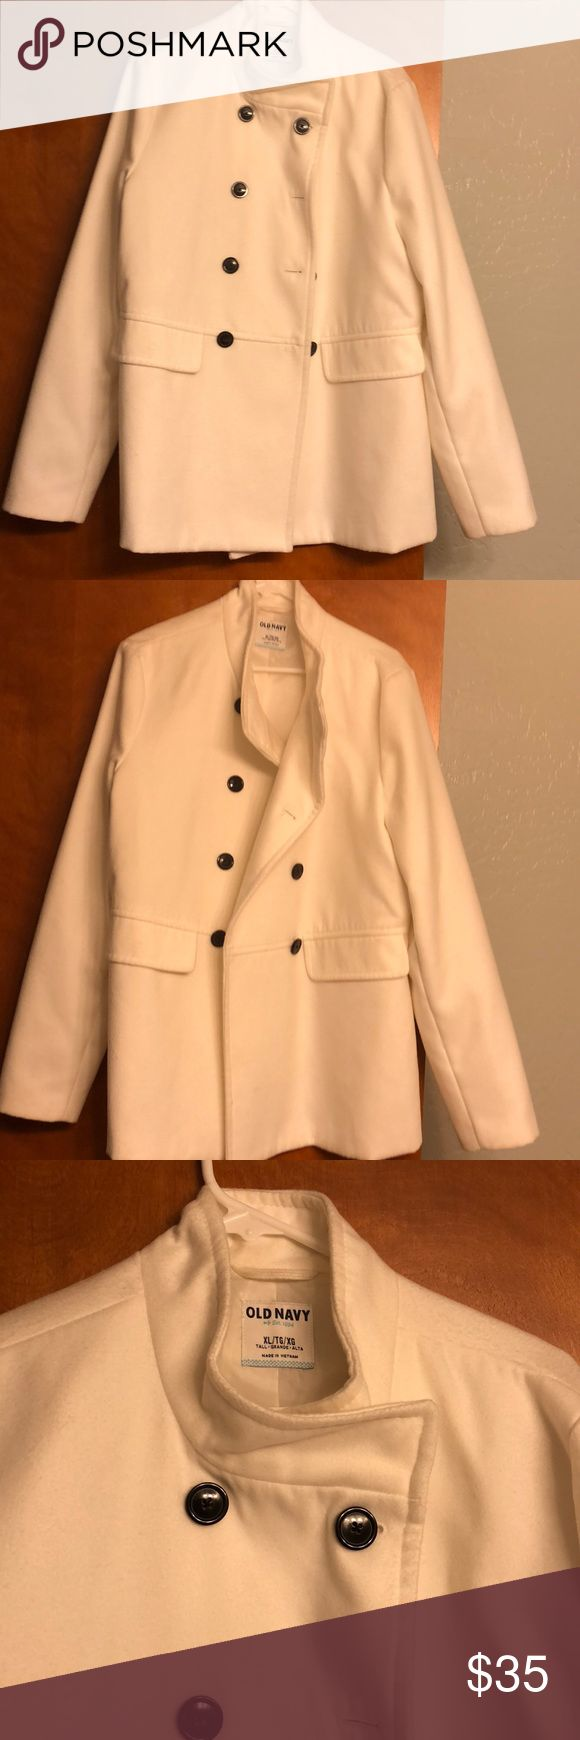 Old navy pea coat Old navy pea coat in ivory. Very cute and sleek. 4 button down. Great condition. Wore a couple times and it no longer fits. Fully lined. Material tag in pictures. Old Navy Jackets & Coats Pea Coats